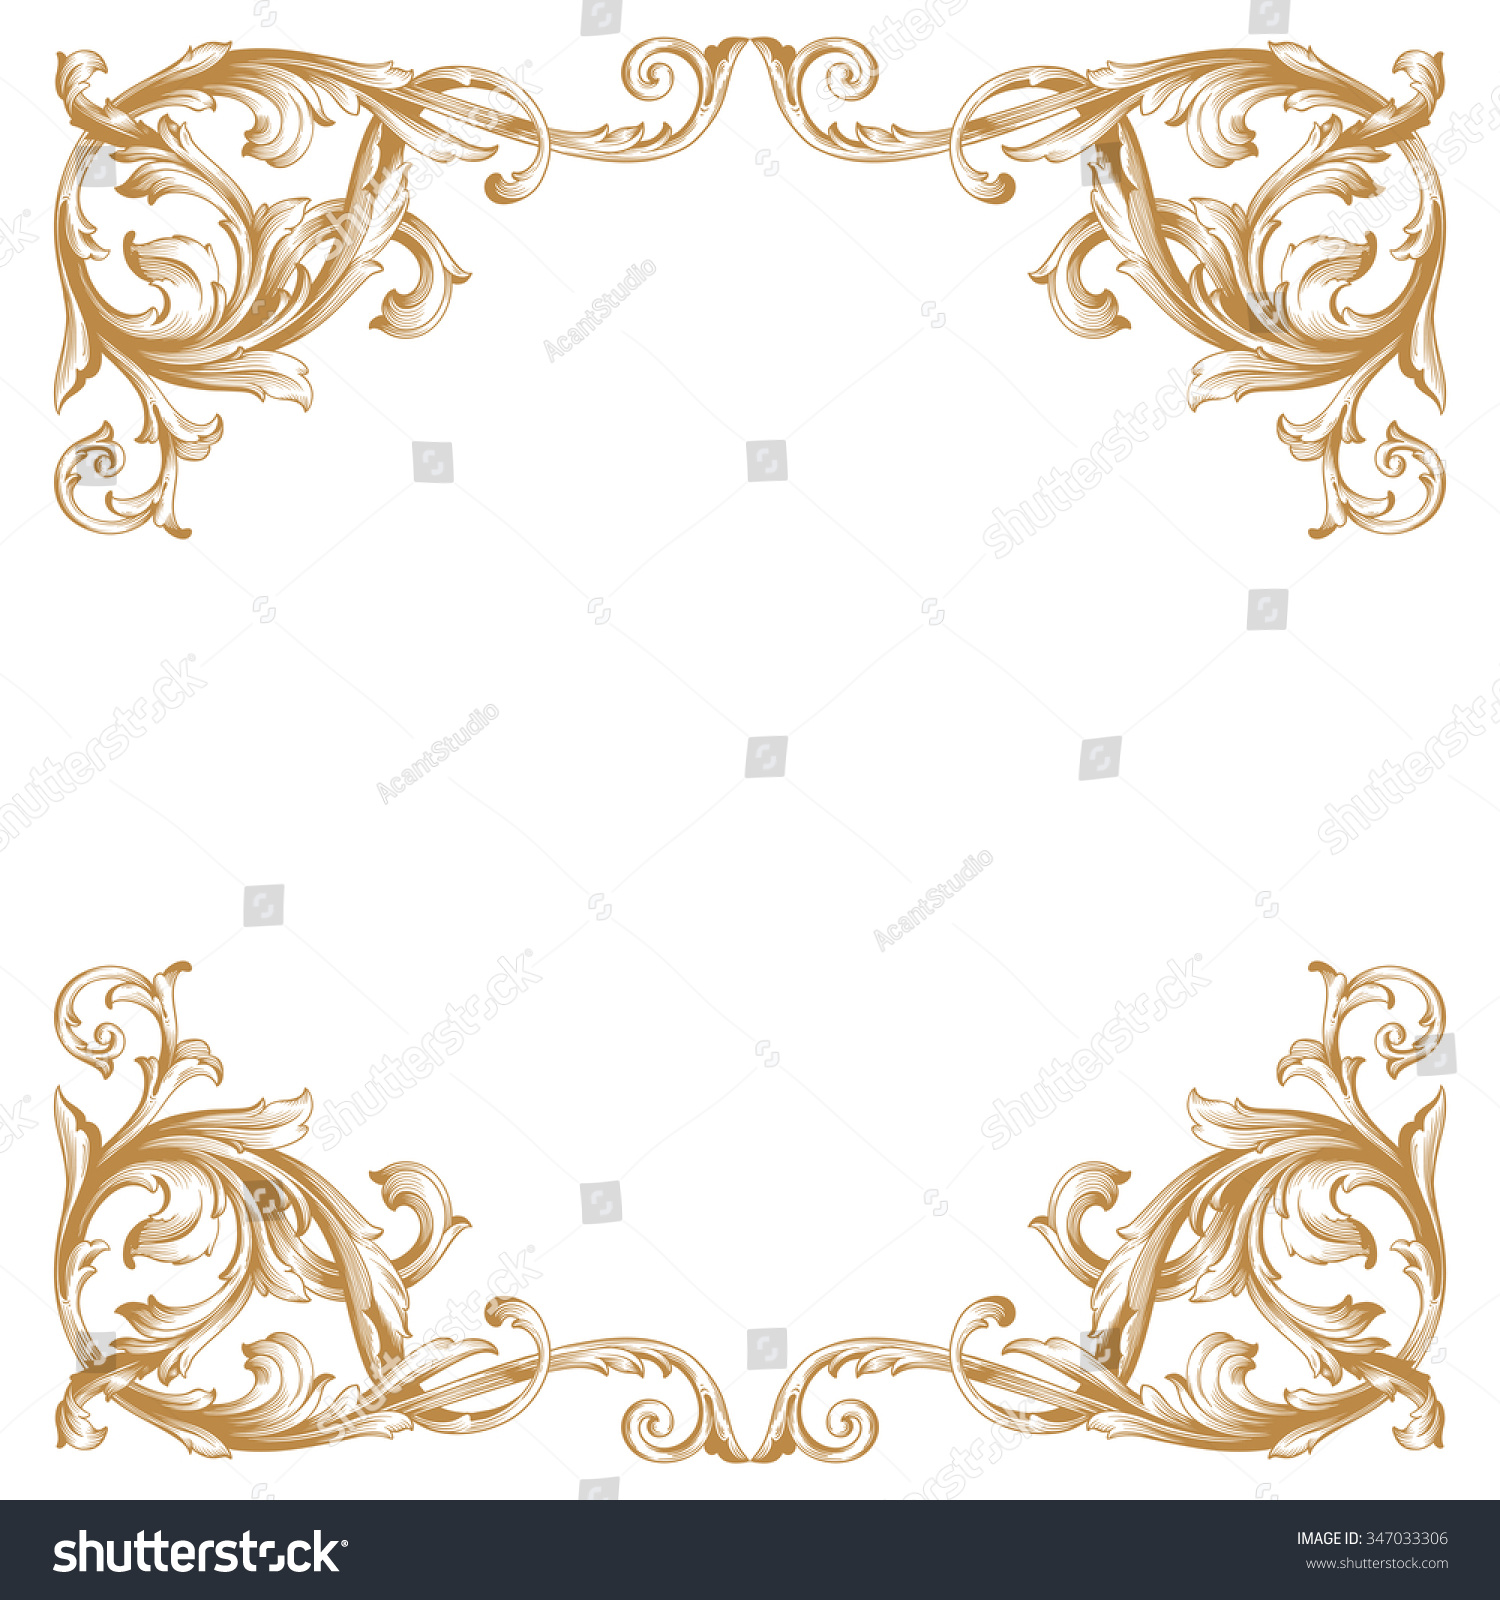 Premium Gold Vintage Baroque Frame Scroll Stock Vector